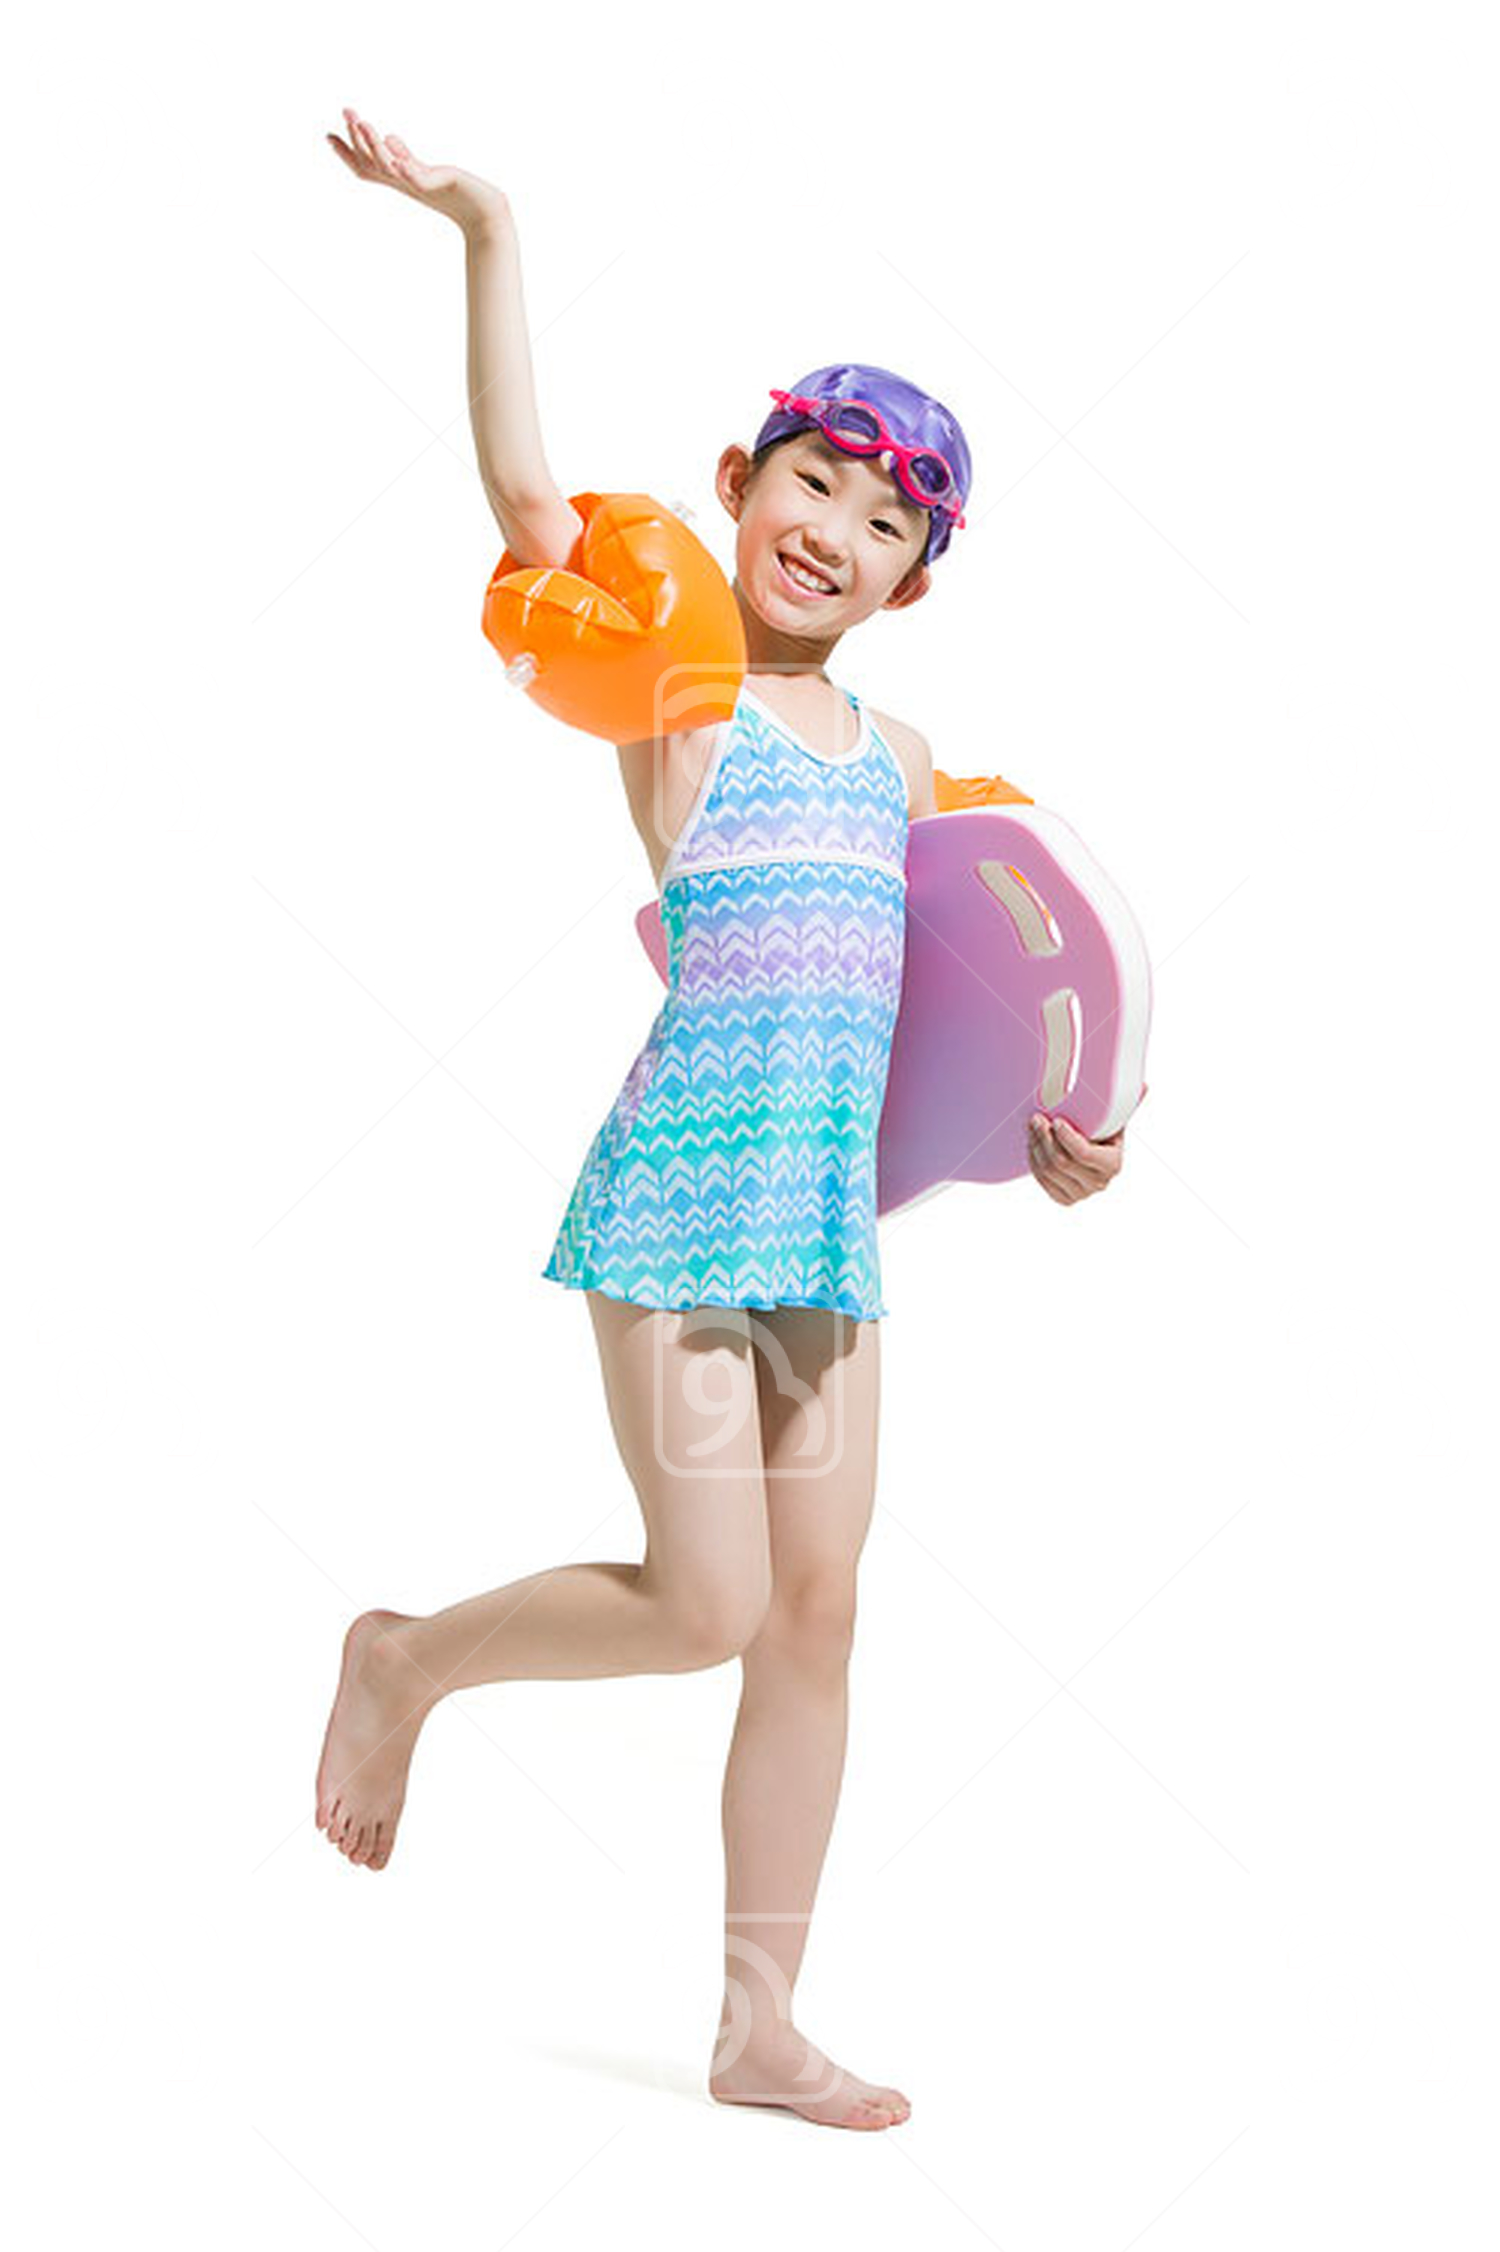 Cute Chinese girl in swimsuit with water wings